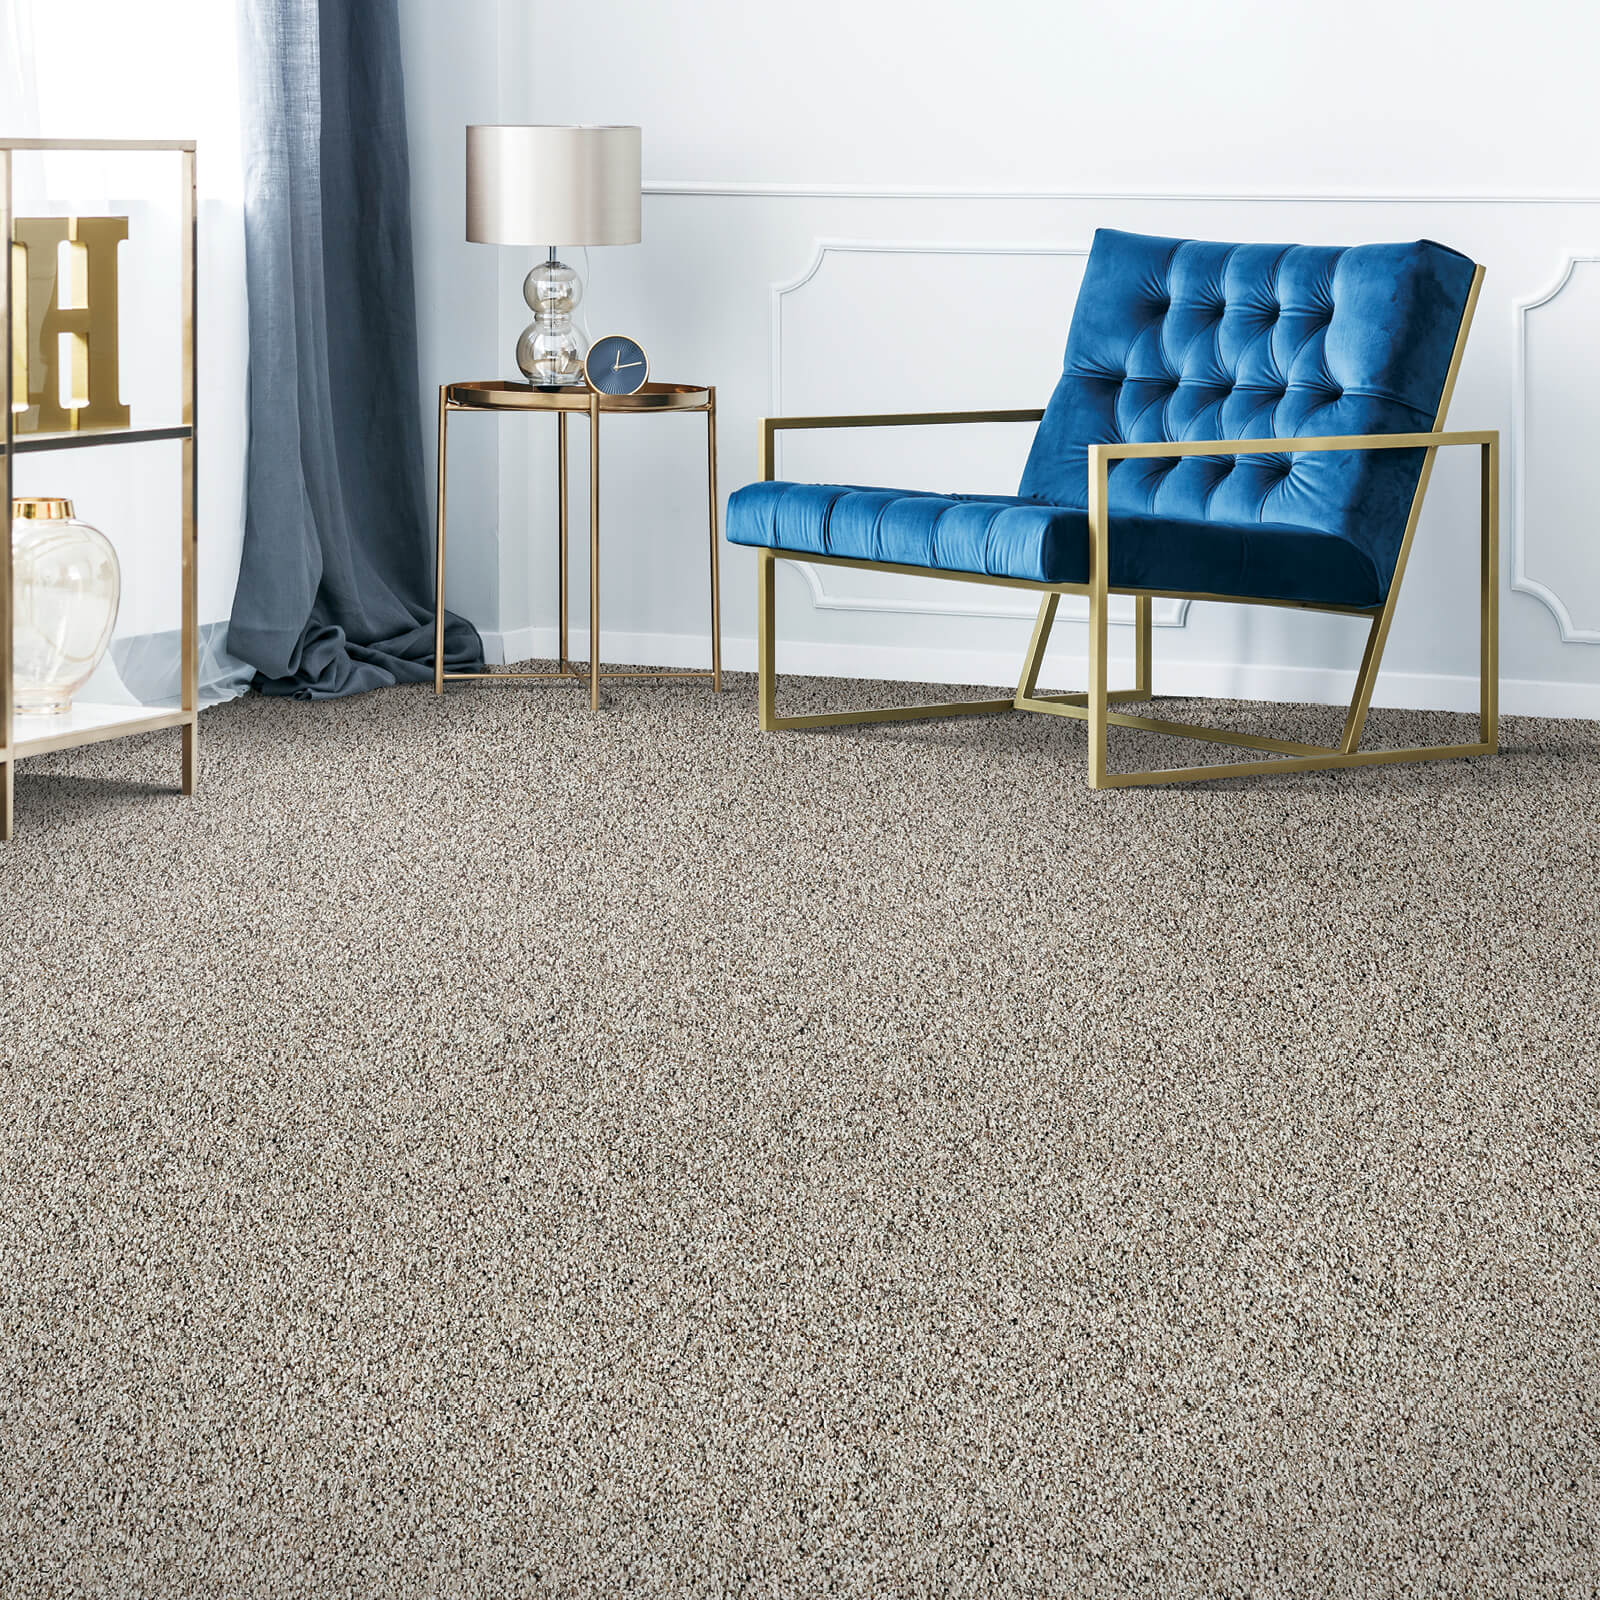 Remarkable carpet vision | Georgia Flooring